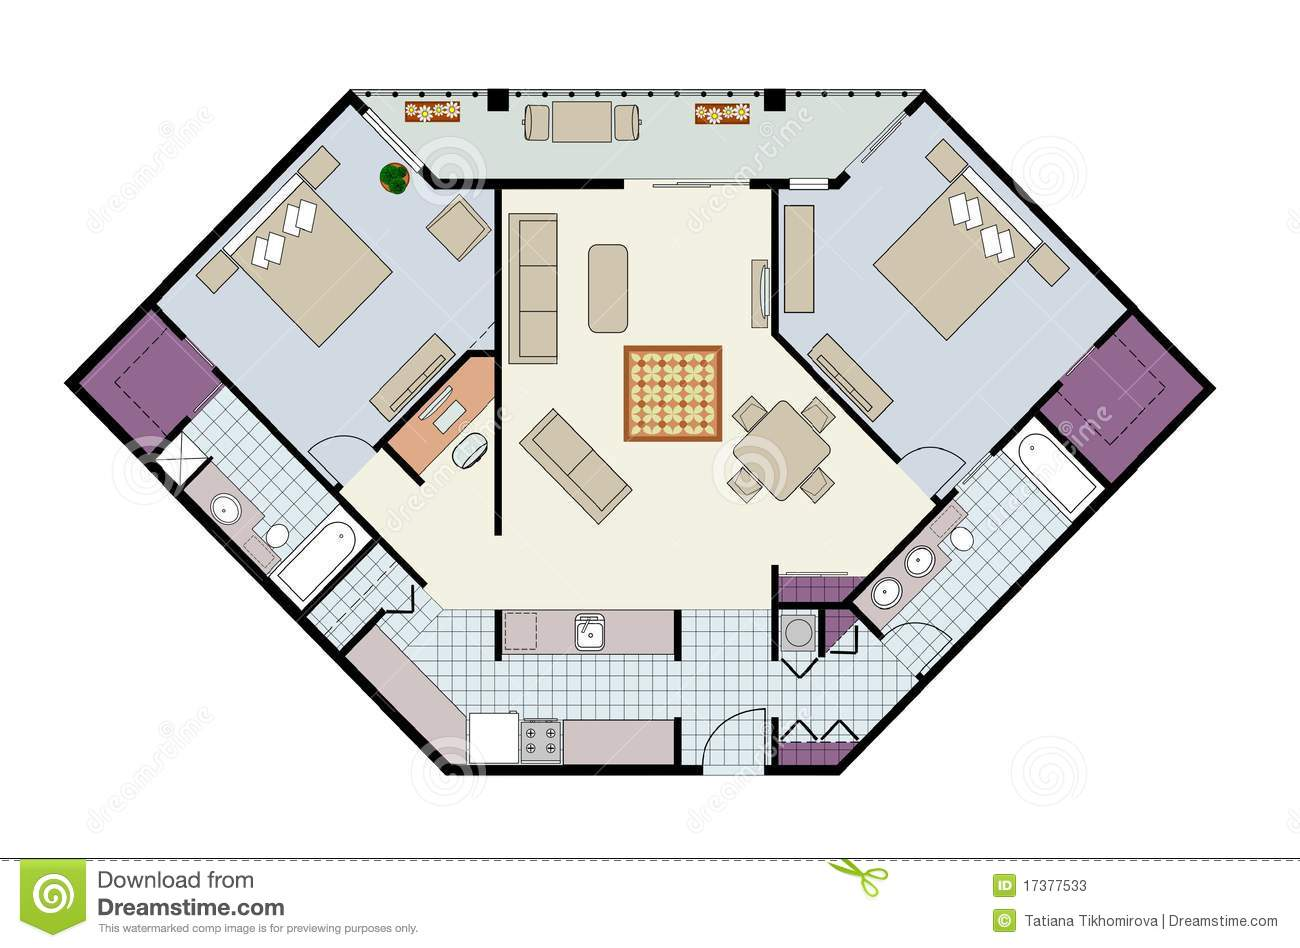 floor plan of two bed condo with den furniture royalty free stock